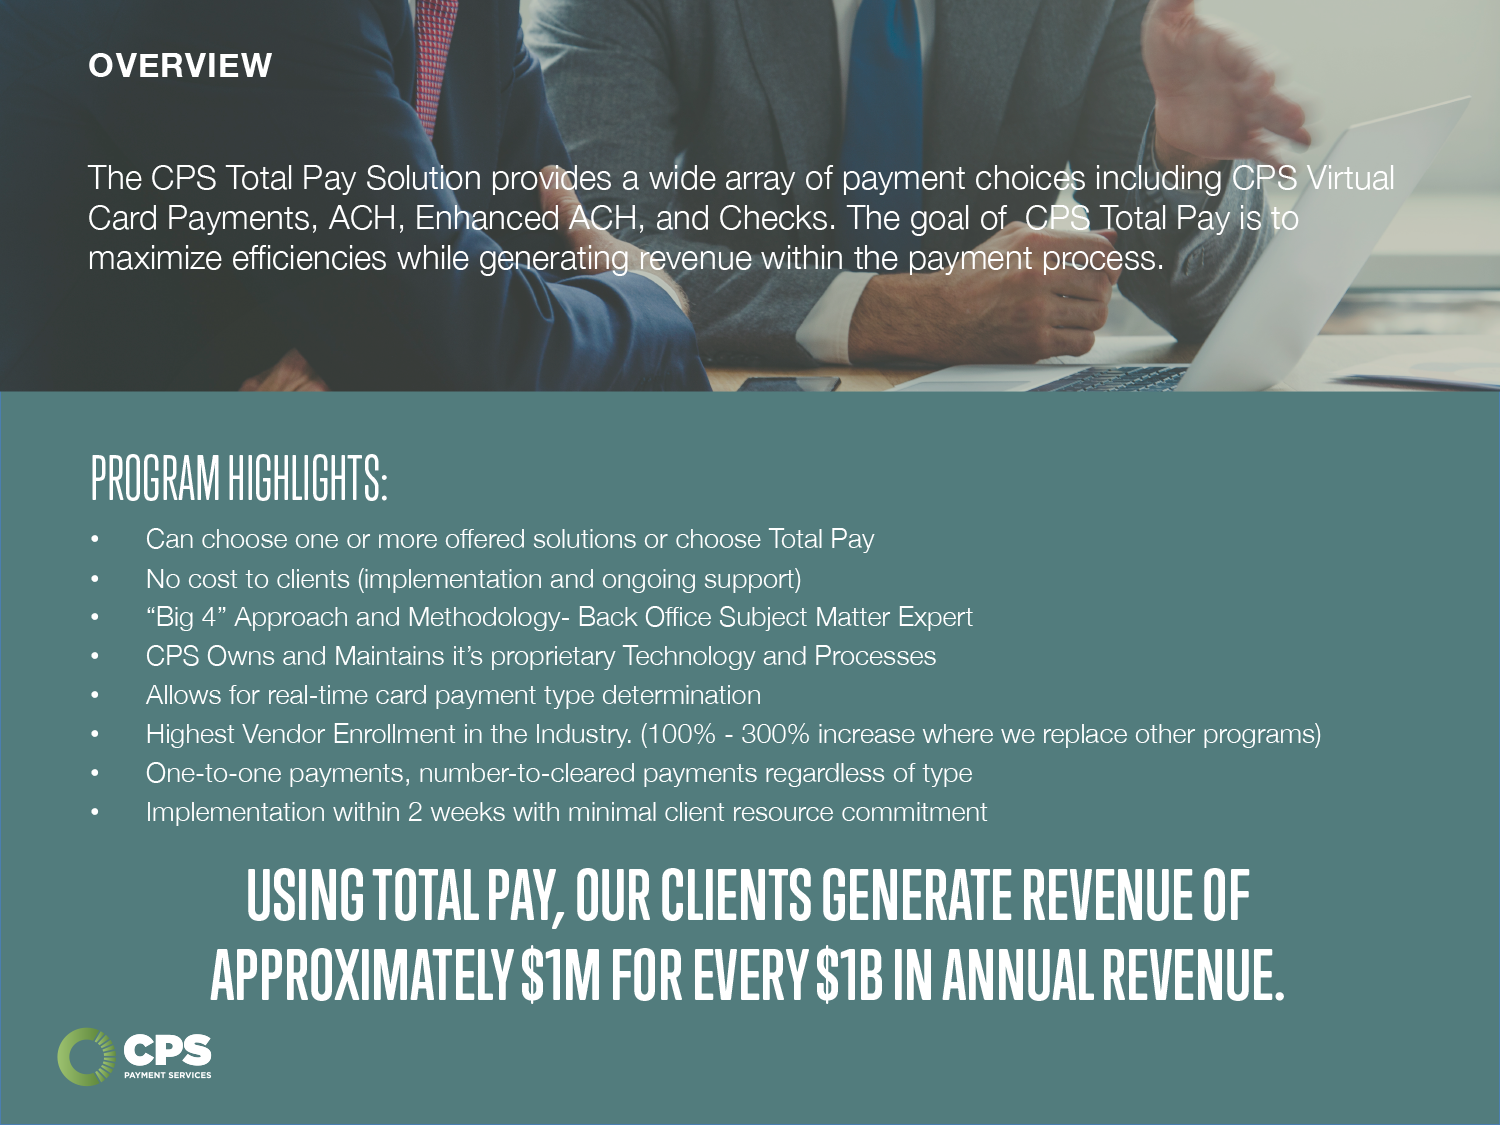 CPS-Total-Pay-Overview-2017_VWA_DMI-2_1500.png